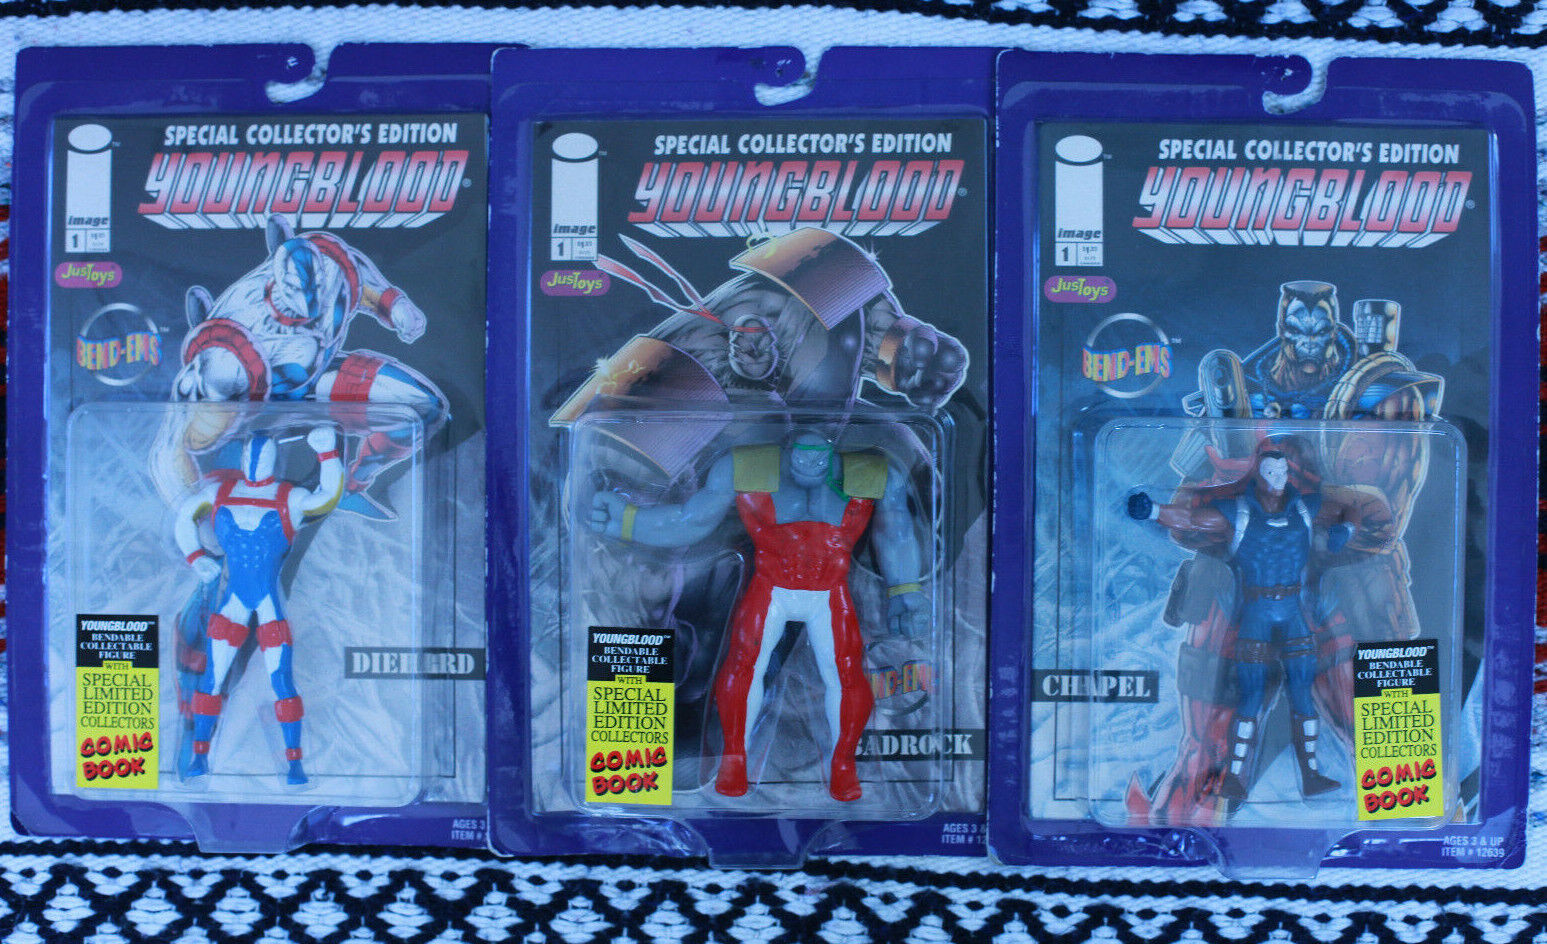 Vintage 90s YOUNGBLOOD Action Figures LOT 4 Bend-Ems Bend-Ems Bend-Ems w Comics & McFarlane Troll bc0d63